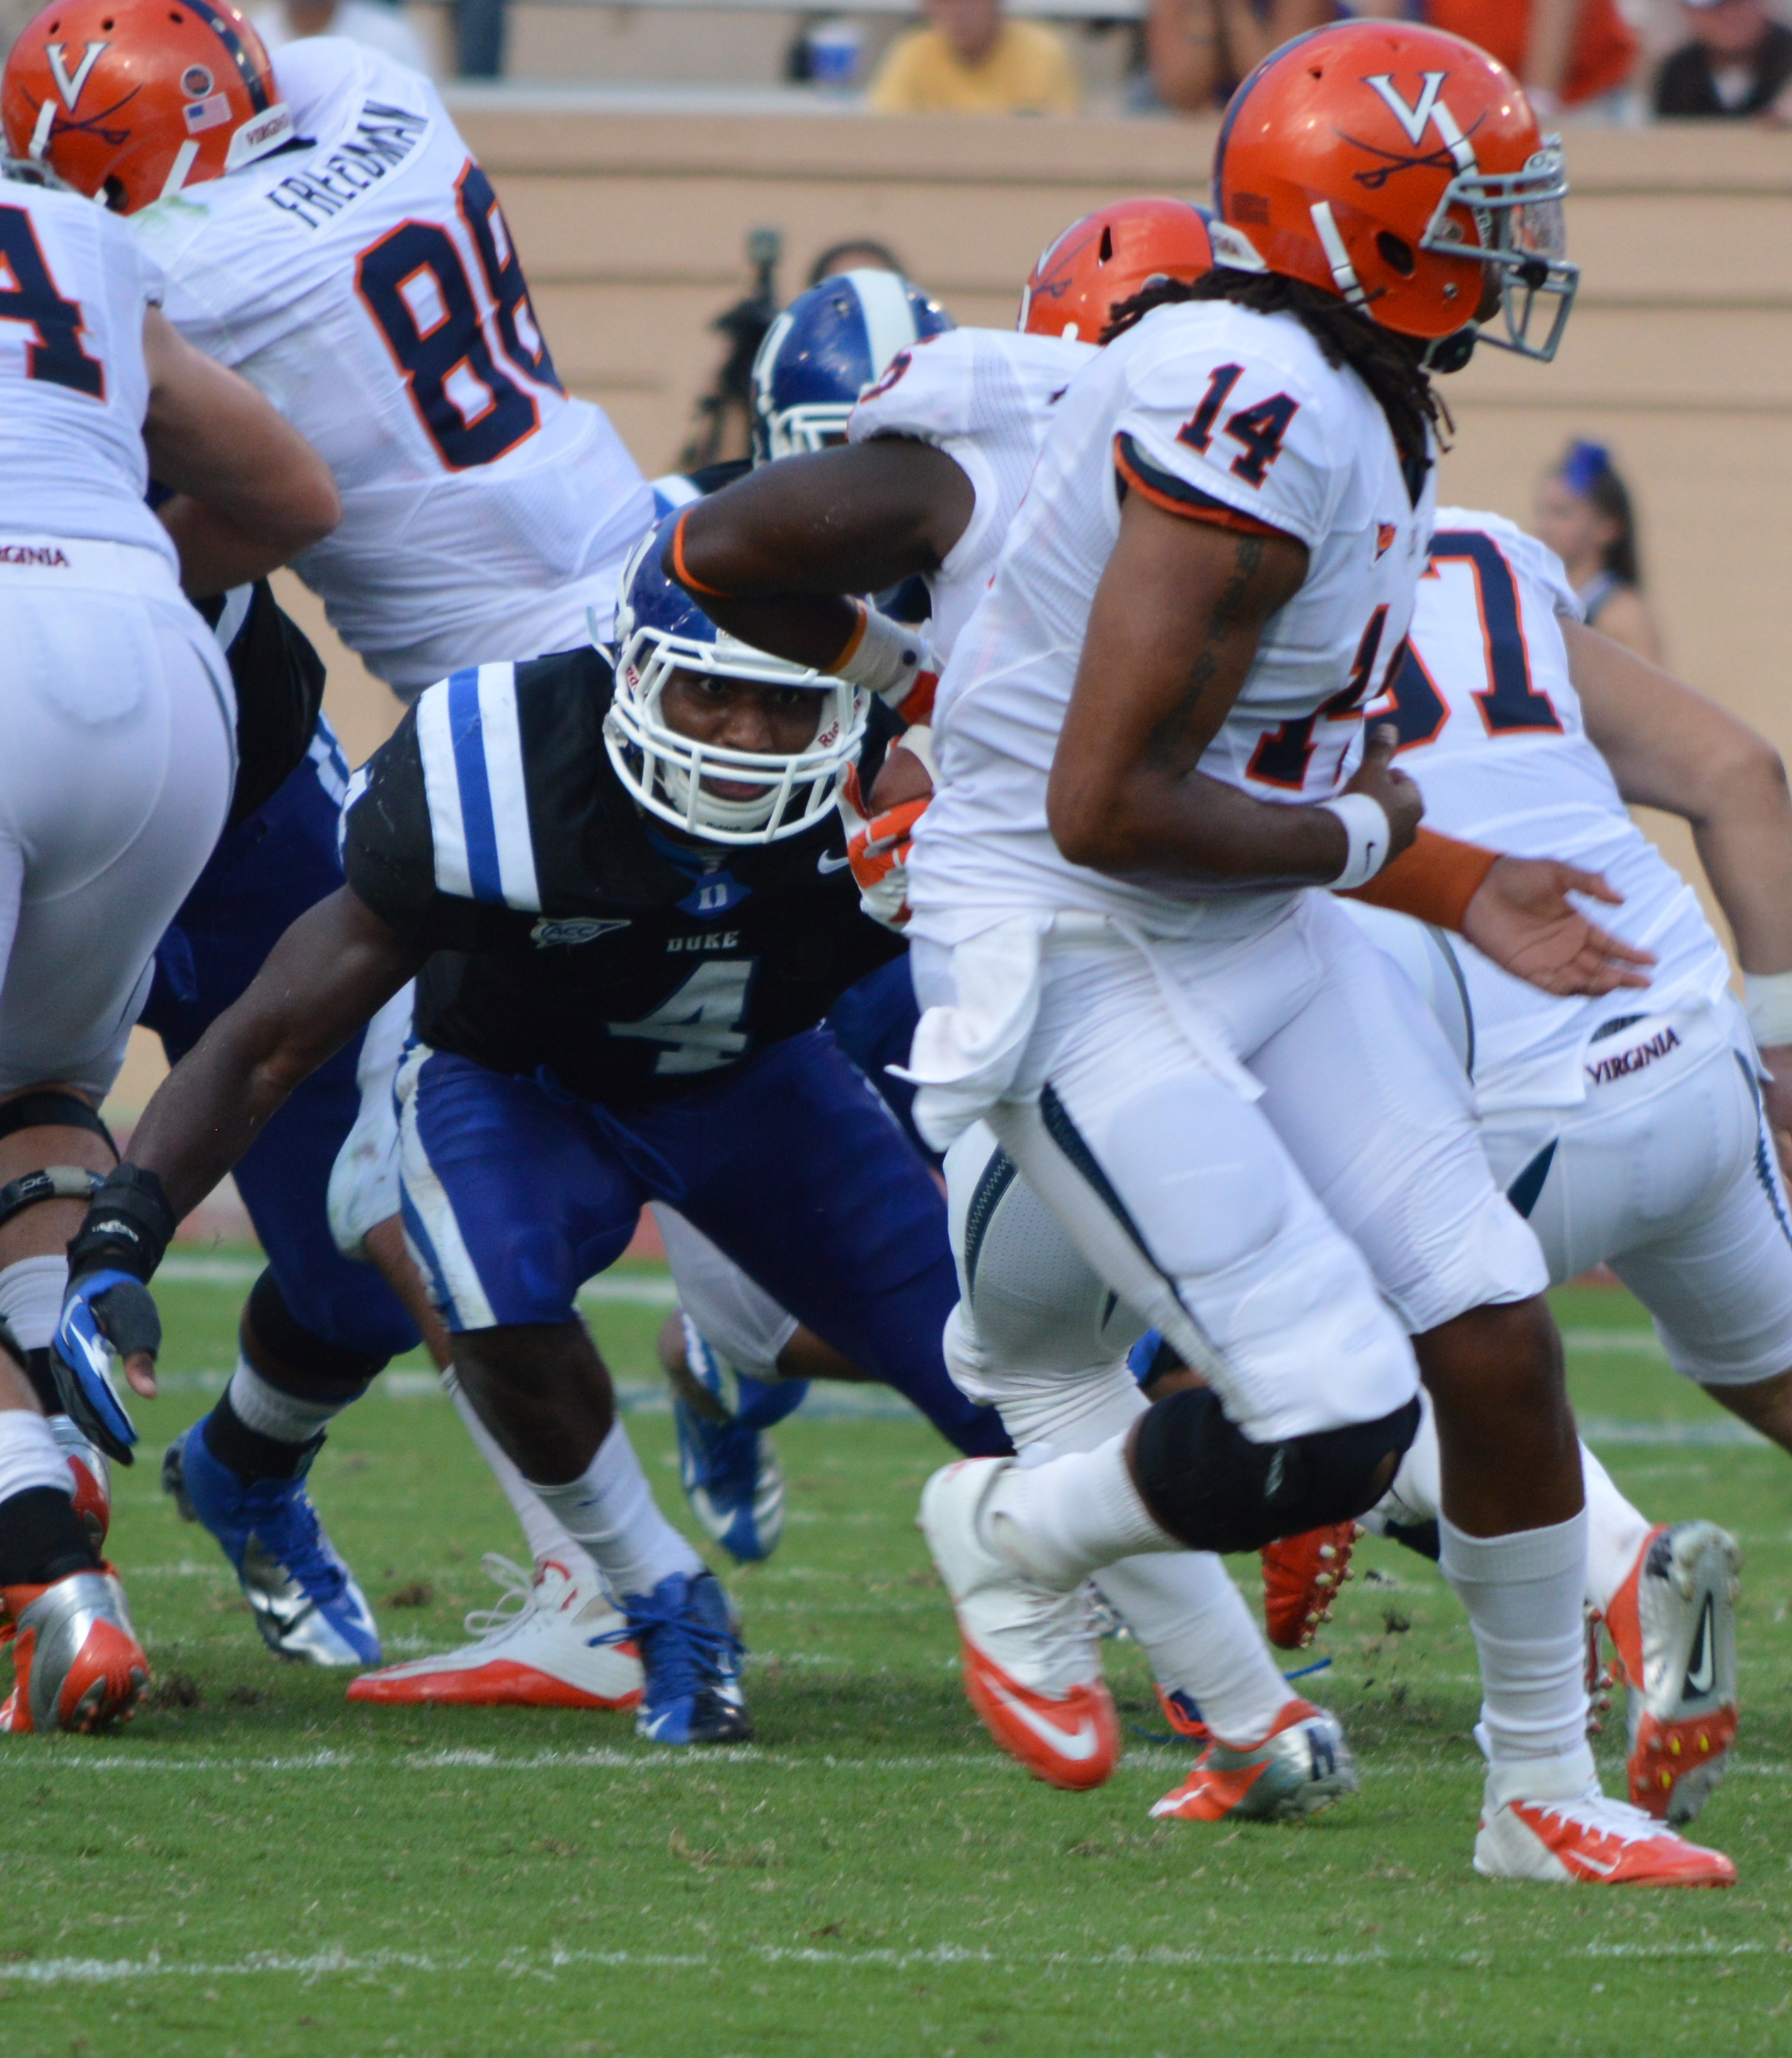 Duke S Walt Canty makes a big stop on 4th and 1 against Virginia - BDN Photo